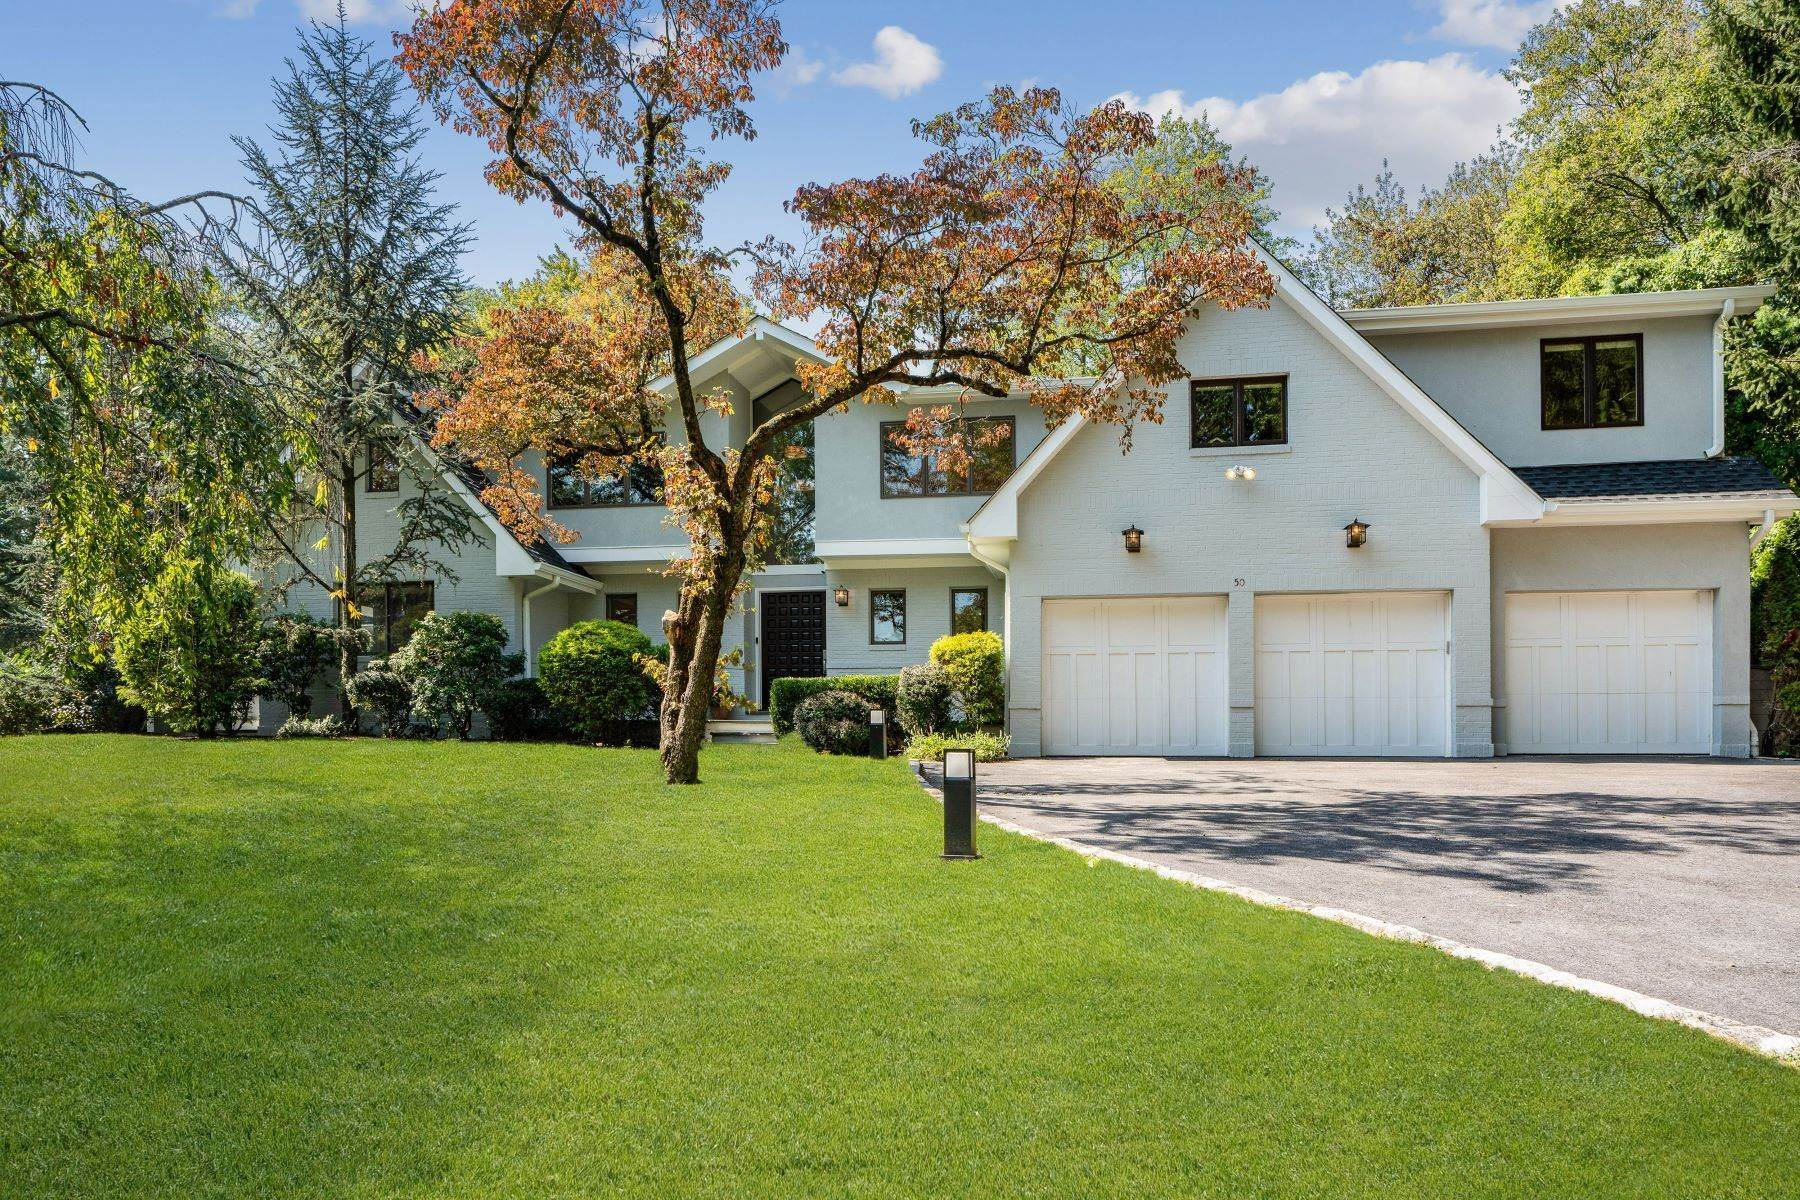 Single Family Homes for Sale at Spectacular Sun-Filled Contemporary! 50 Lincoln Road Scarsdale, New York 10583 United States